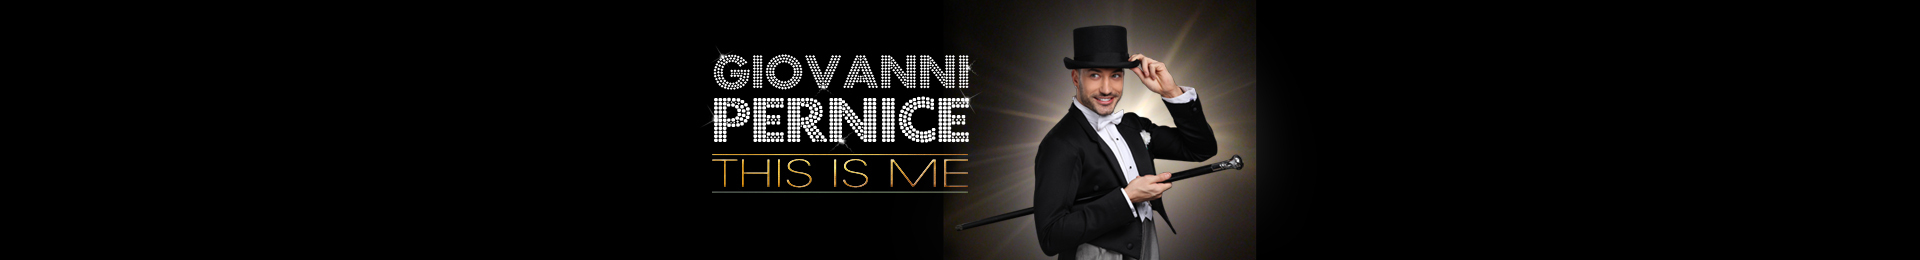 Giovanni Pernice: This Is Me - Gala Performance banner image